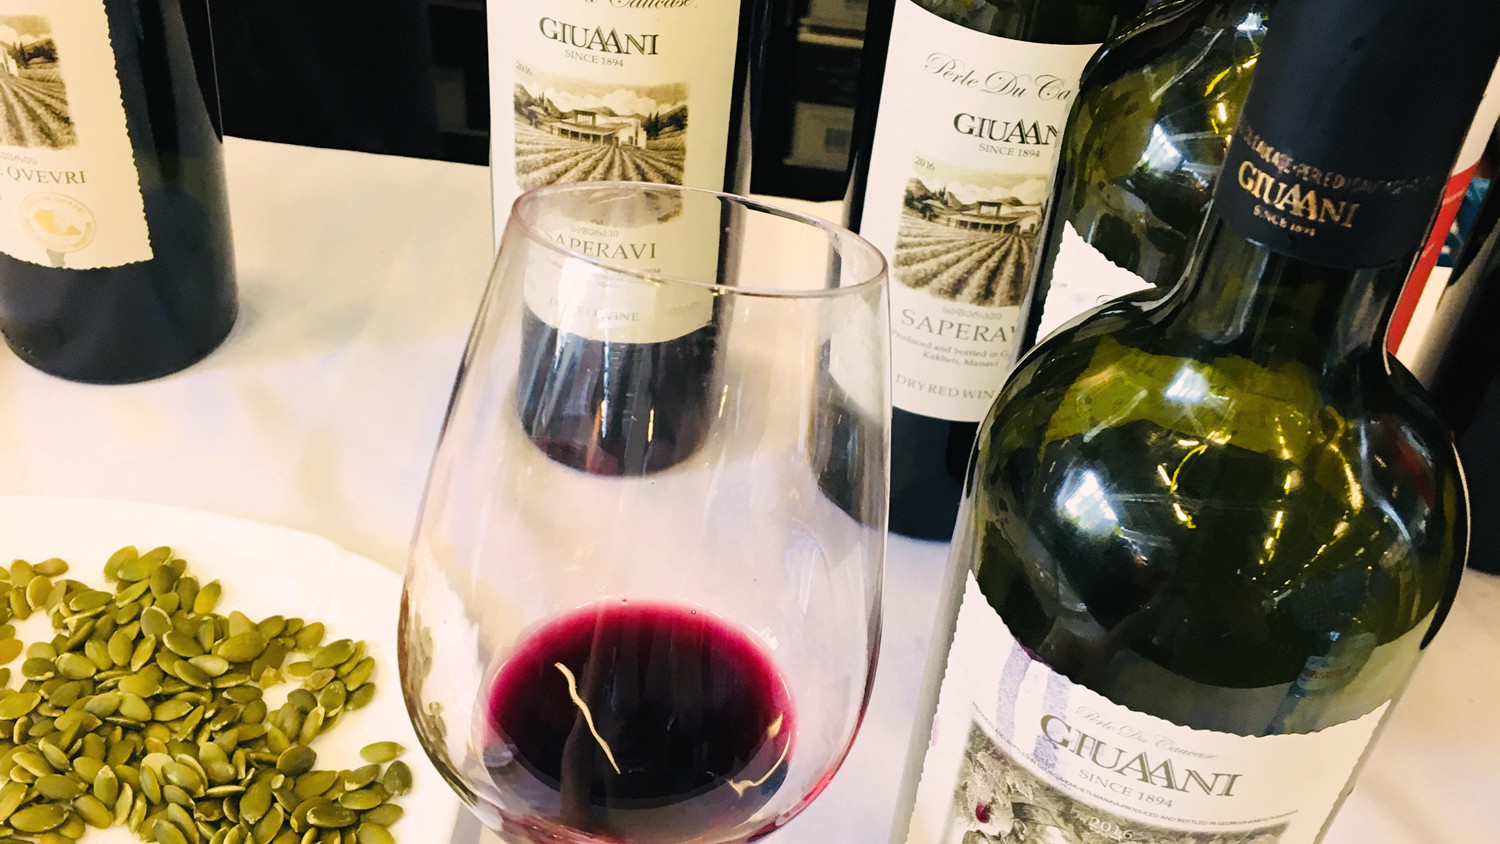 Giuaani Winery